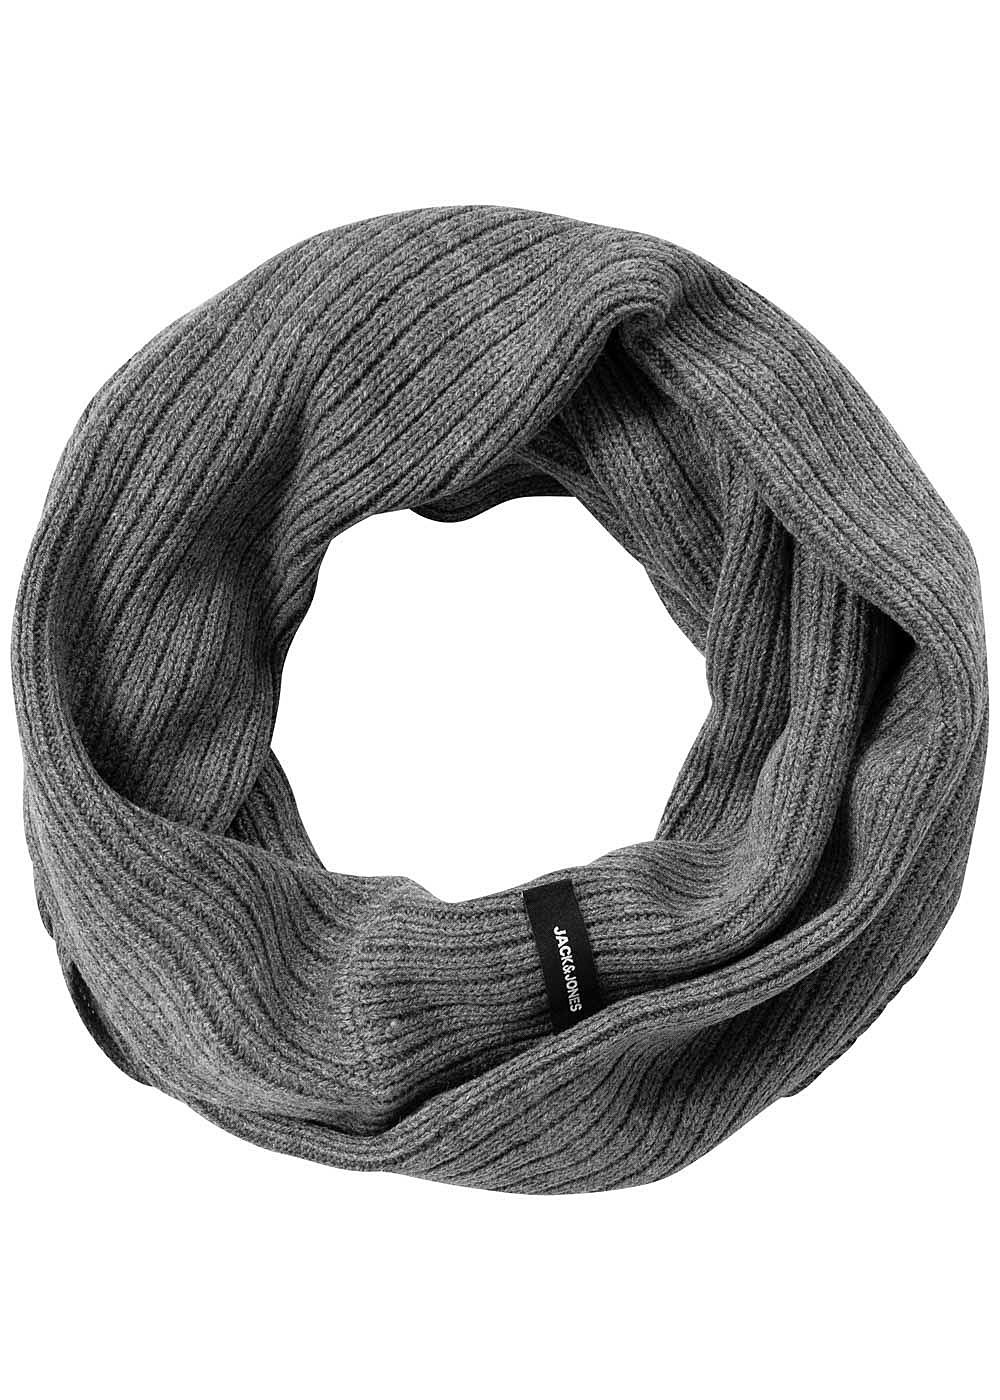 Jack and Jones Herren Knit Loop Scarf dunkel grau - Art.-Nr.: 19083208-OS-DG